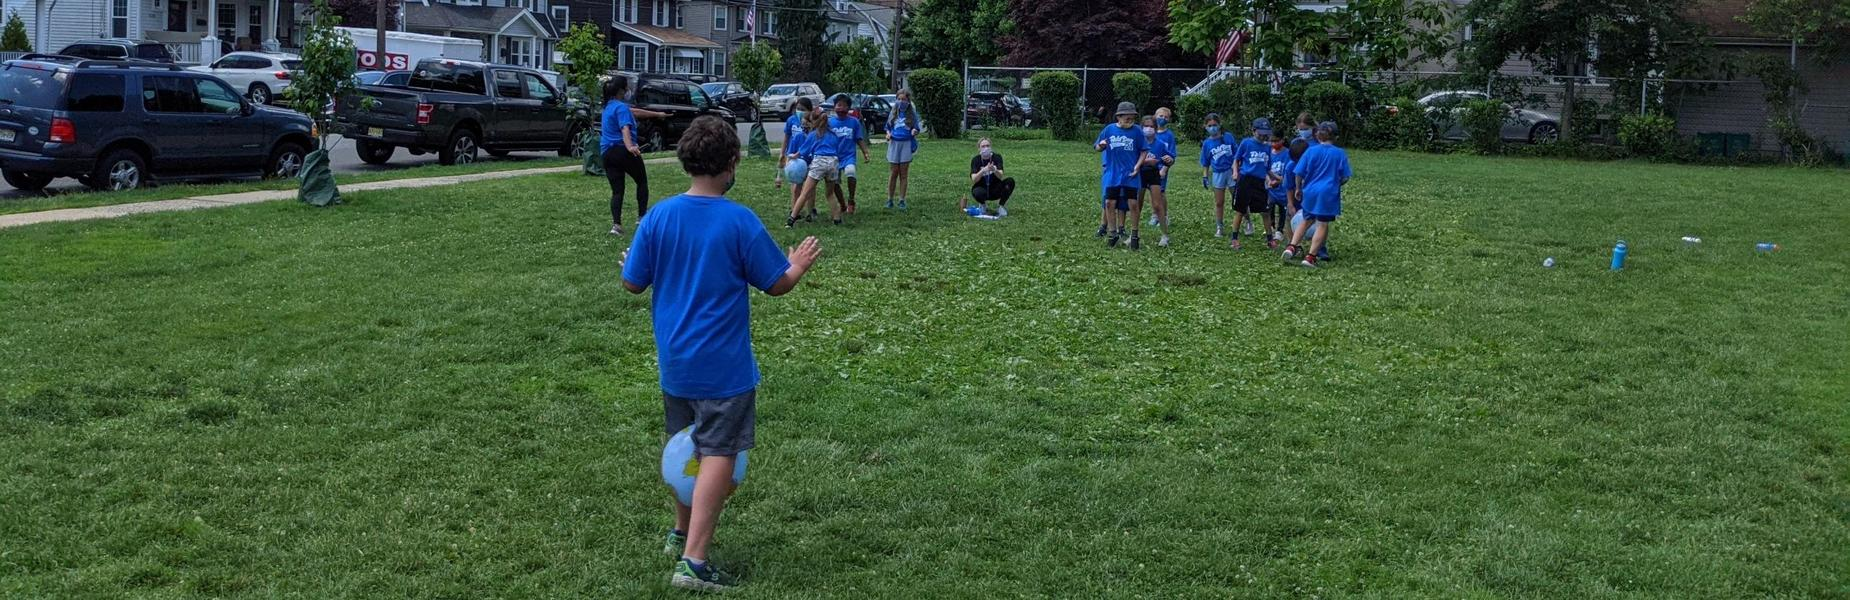 Photo of students having fun during Field Day.